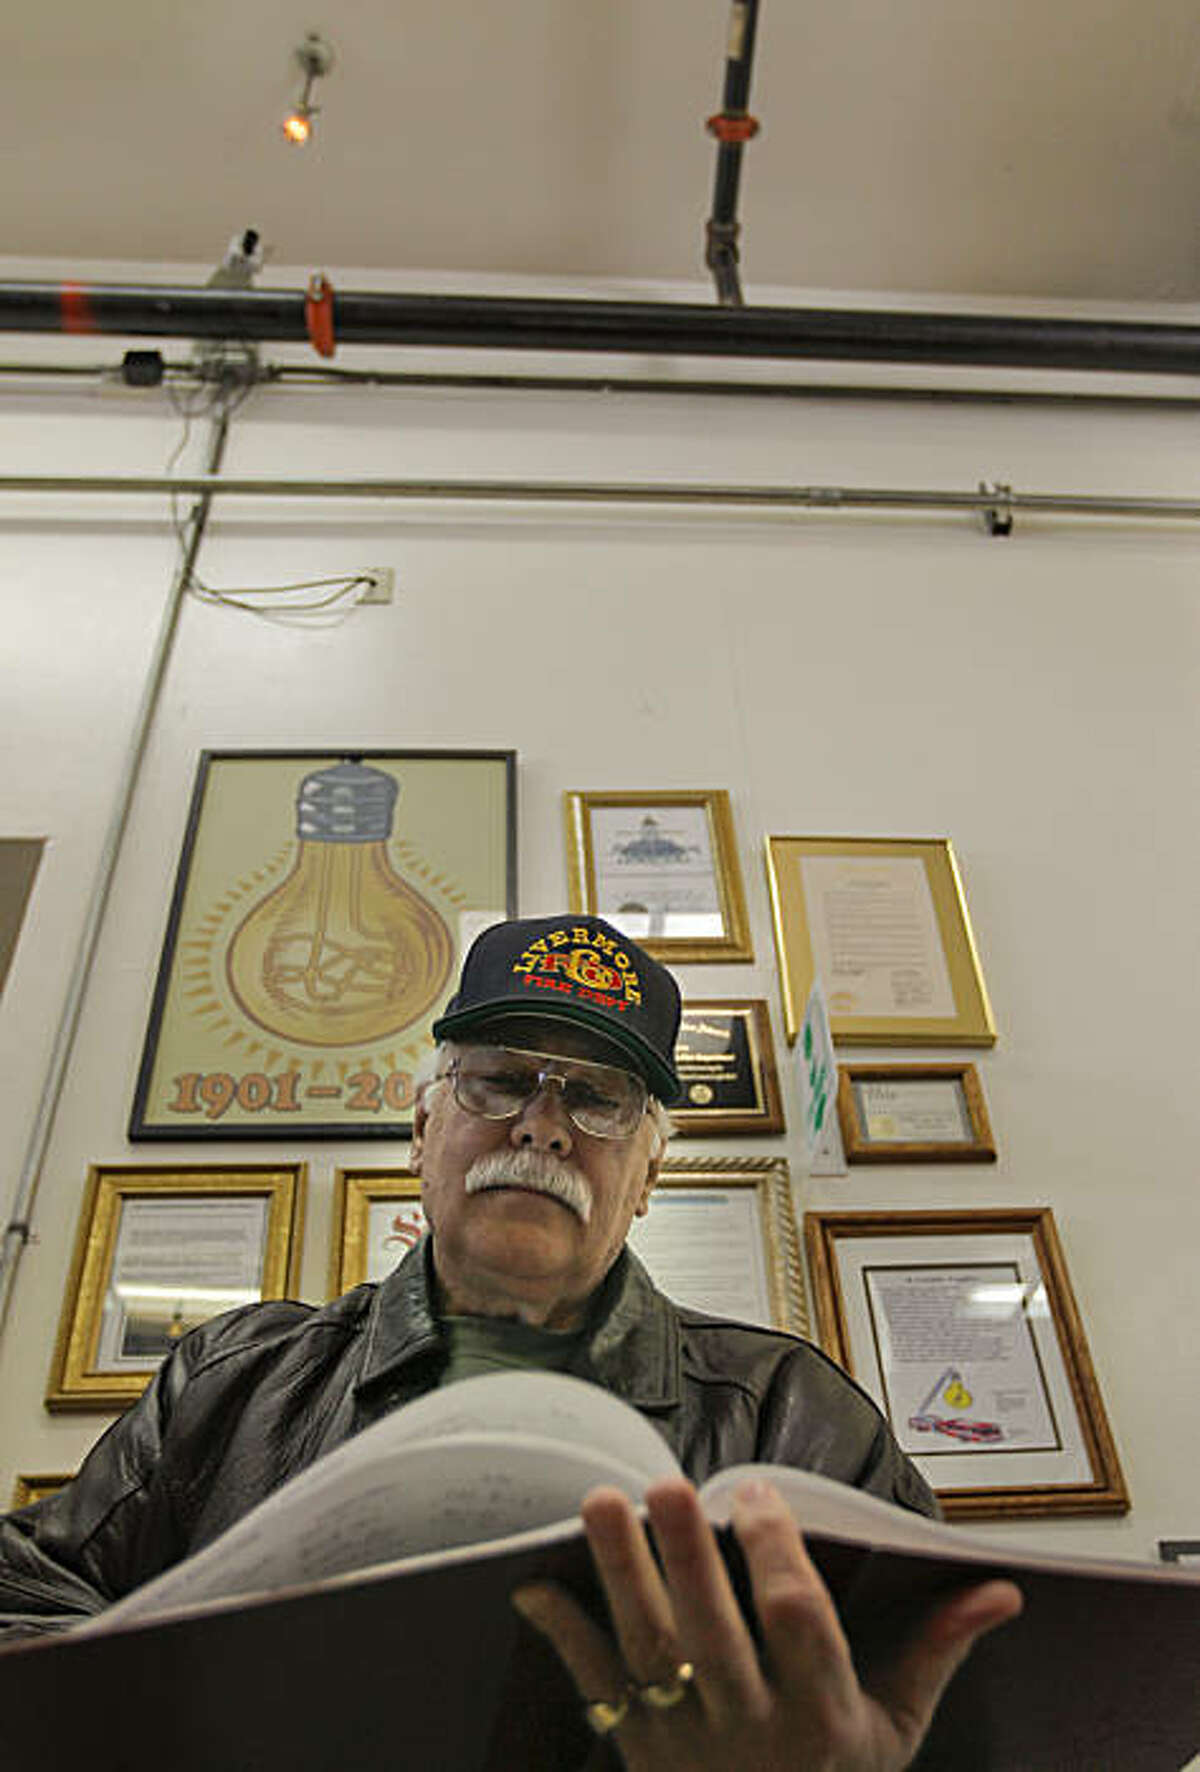 Retired Livermore Division Fire Chief, Lynn R. Owens, holds the guestbook showing visitors who have stopped by to see the longest burning light bulb, as declared by the Guinness Book of World Records and Ripley's Believe-It-or-Not, which hangs above him from the ceiling of Livermore fire Station #6 on Thursday Feb. 3, 2011, in Livermore, Ca. Owens is the chairperson of the Livermore Light Bulb Centennial Committee. A small area inside the fire station garage has been dedicated with displays in recognition of the centennial bulb. The light bulb was first switched on at fire department hose cart house on L Street in Livermore in 1901.